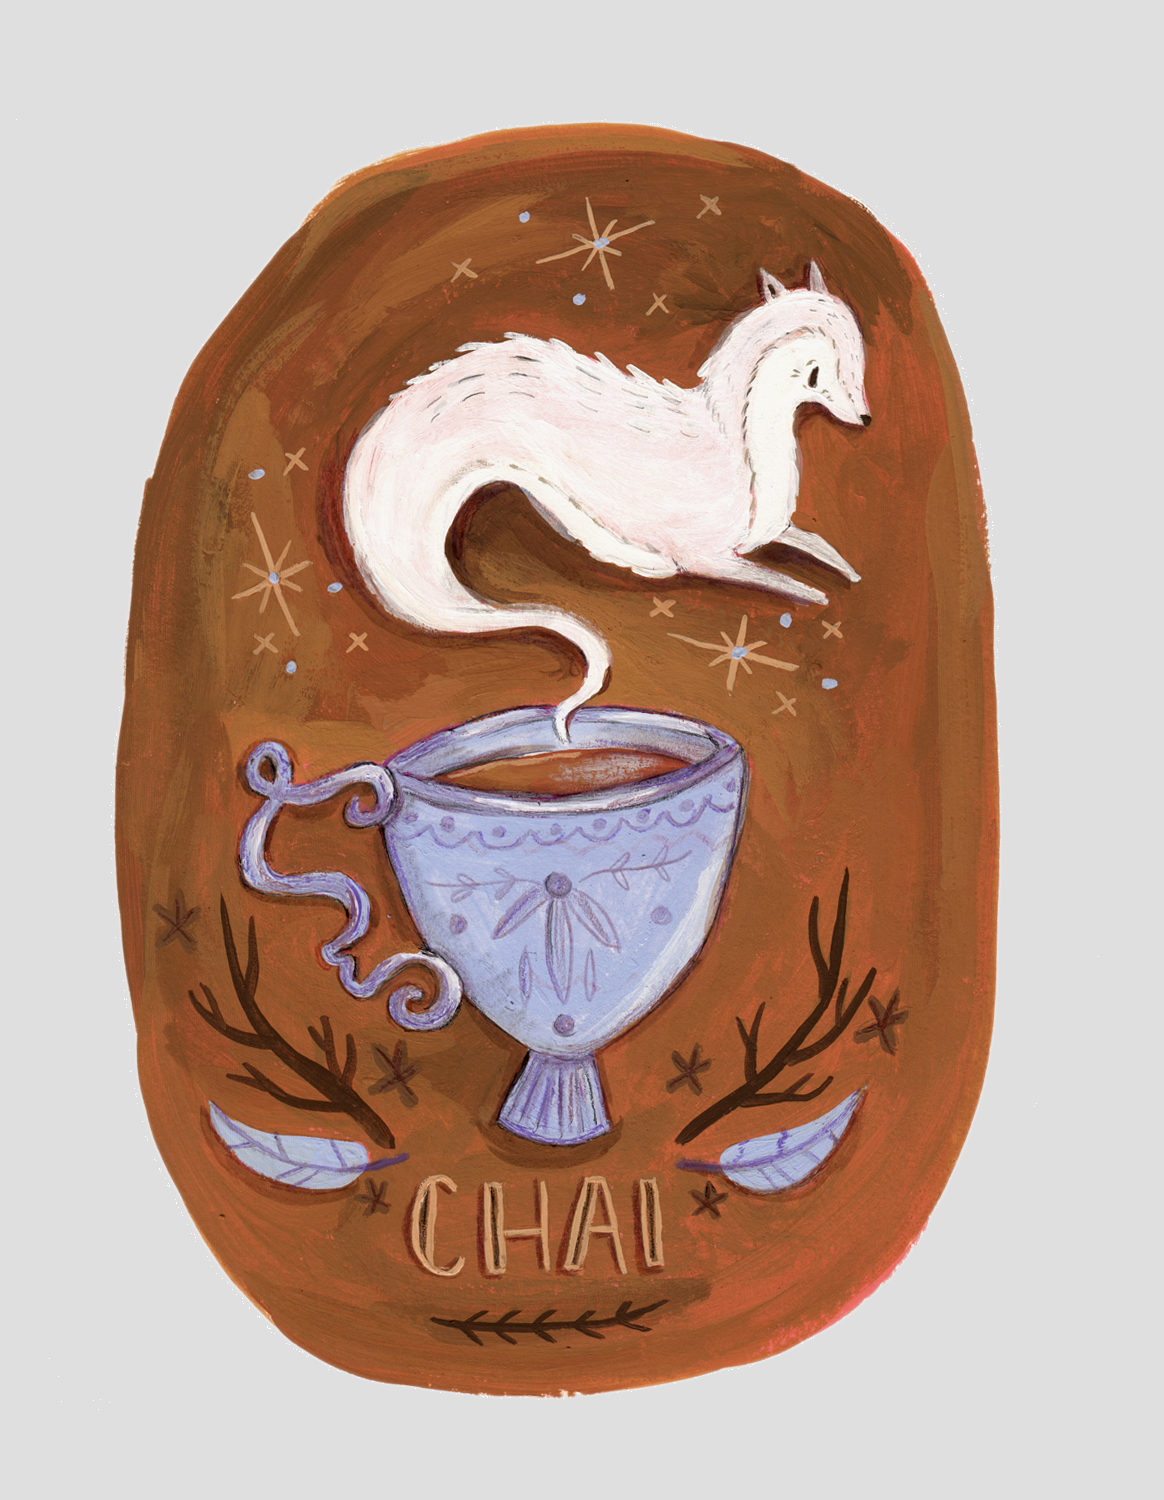 Chai Ghostea